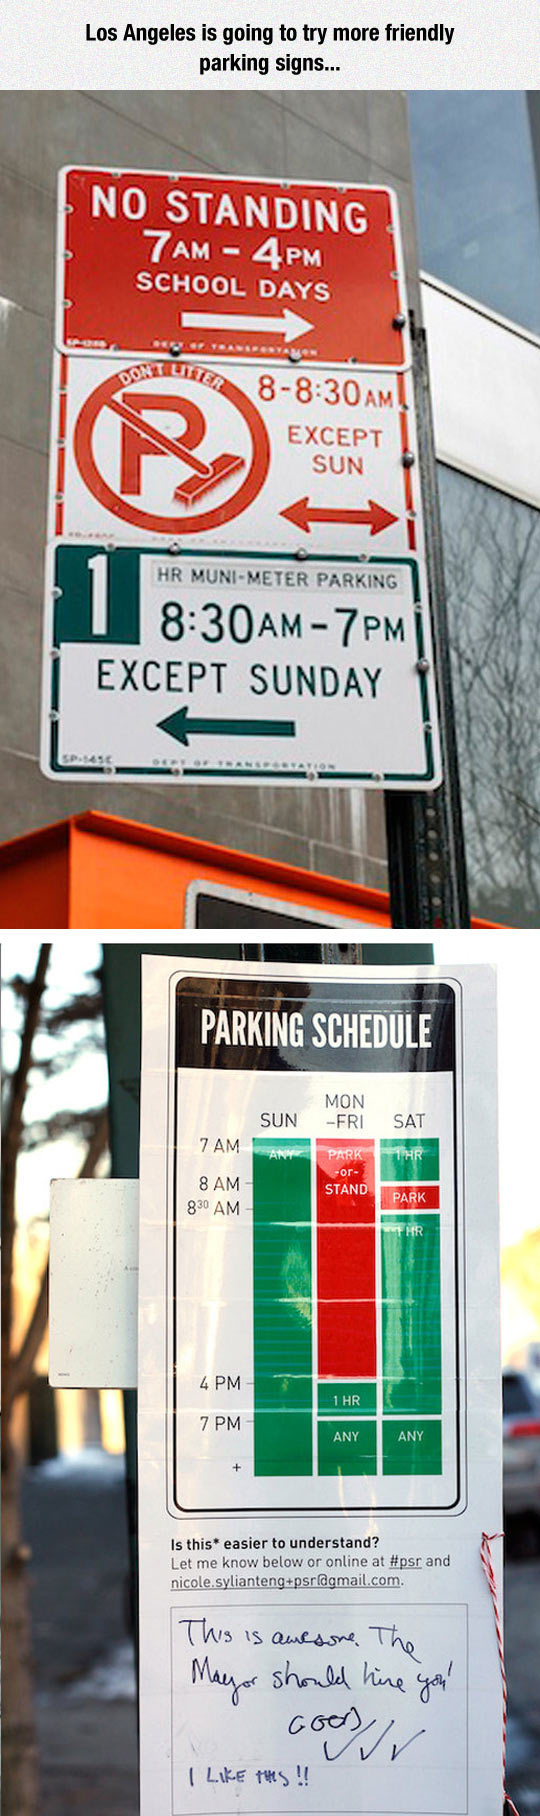 funny-sign-parking-friendly-Los-Angeles